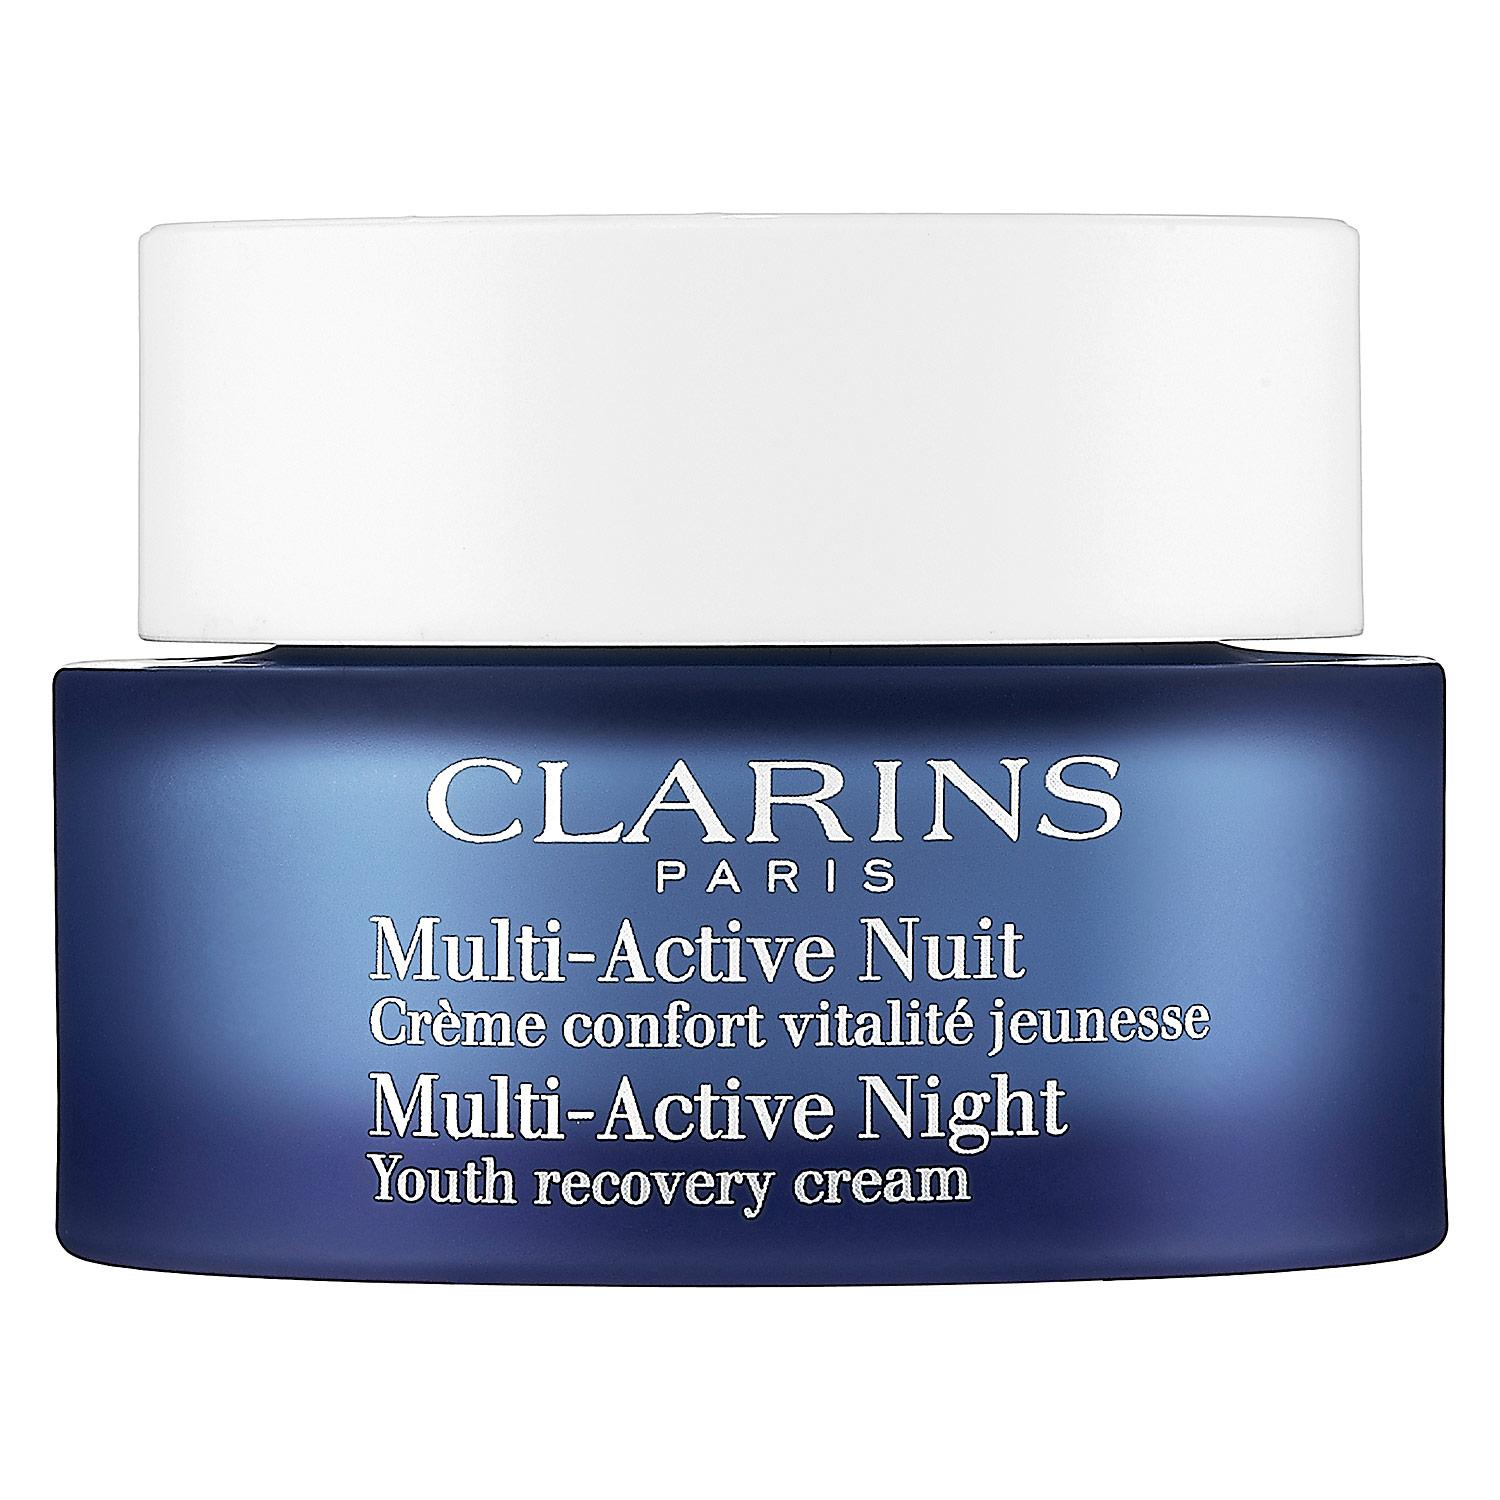 Multi-Active Night Youth Recovery Cream for Normal to Combination Skin